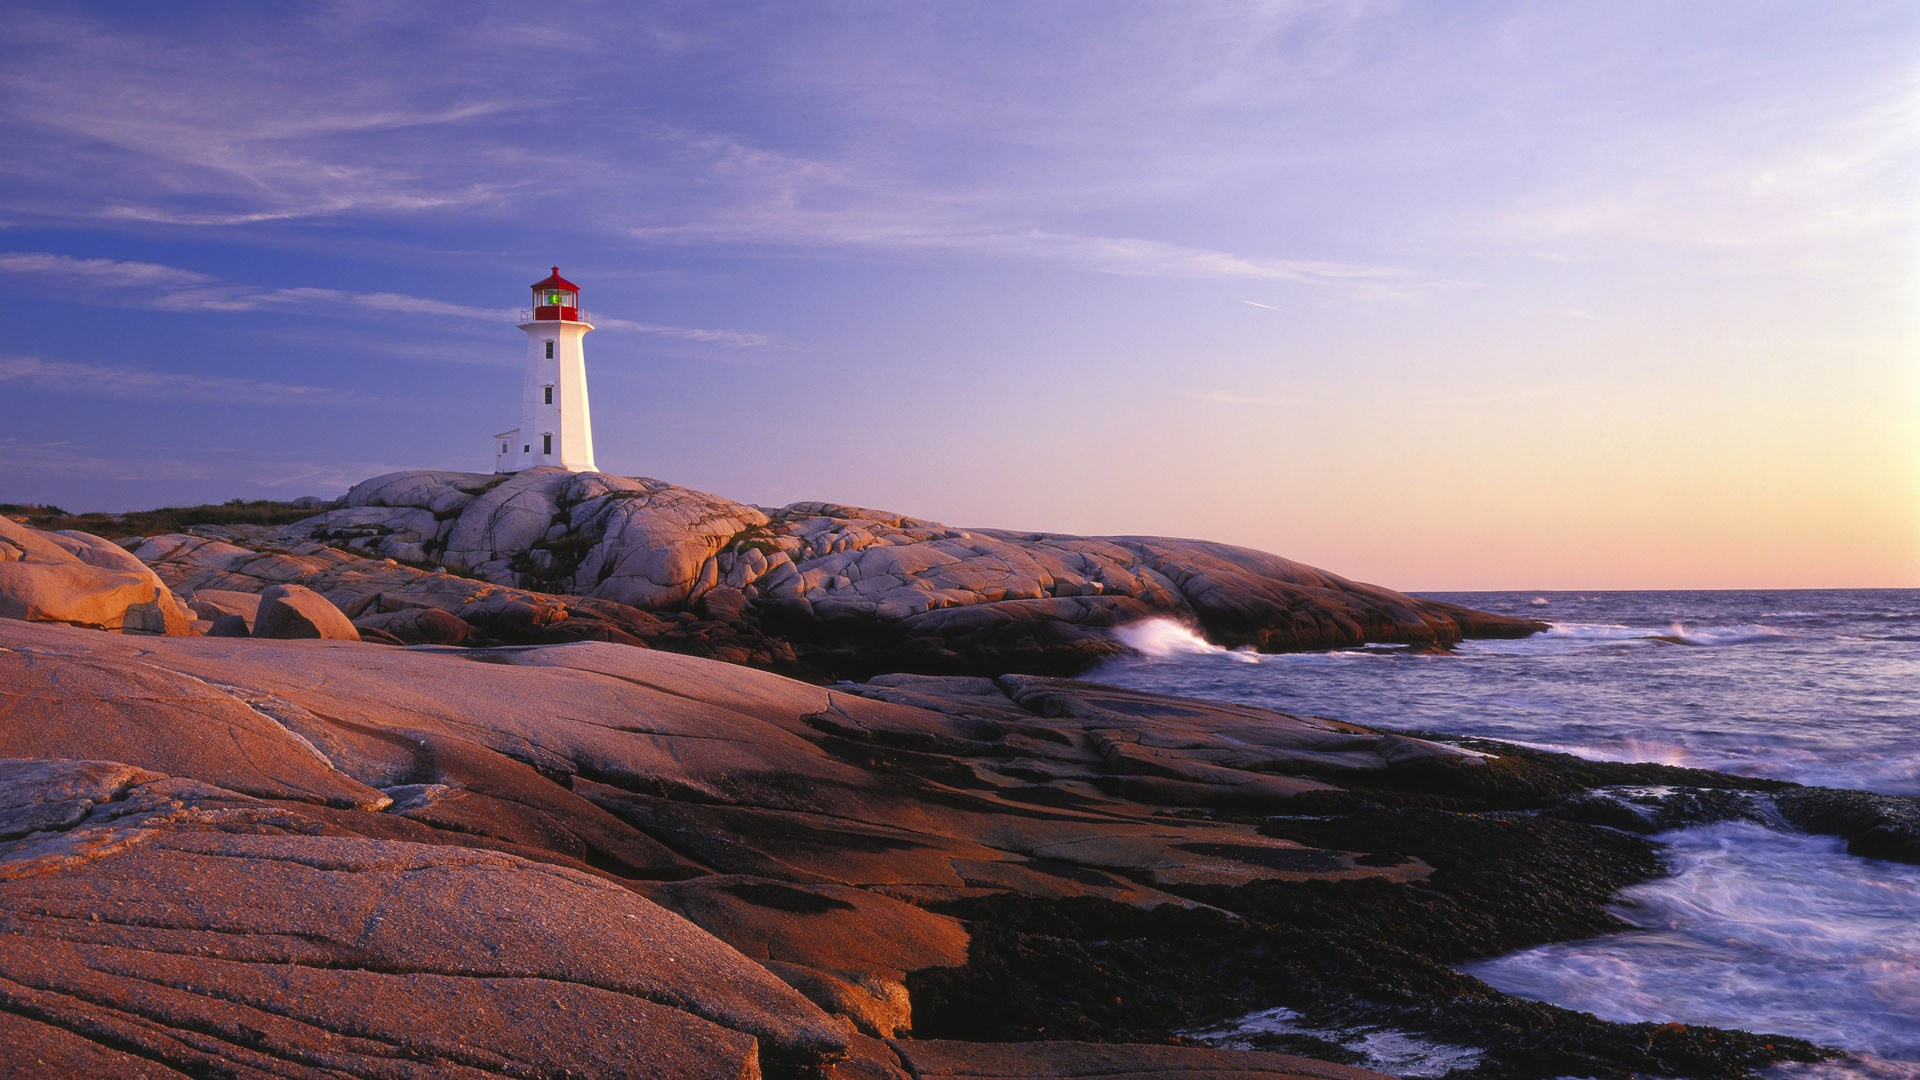 Peggys%20Point%20(Peggys%20Cove)%20Lighthouse%20,%20Nova%20Scotia%20Canada%20Lighthouses,%20Canada.jpg